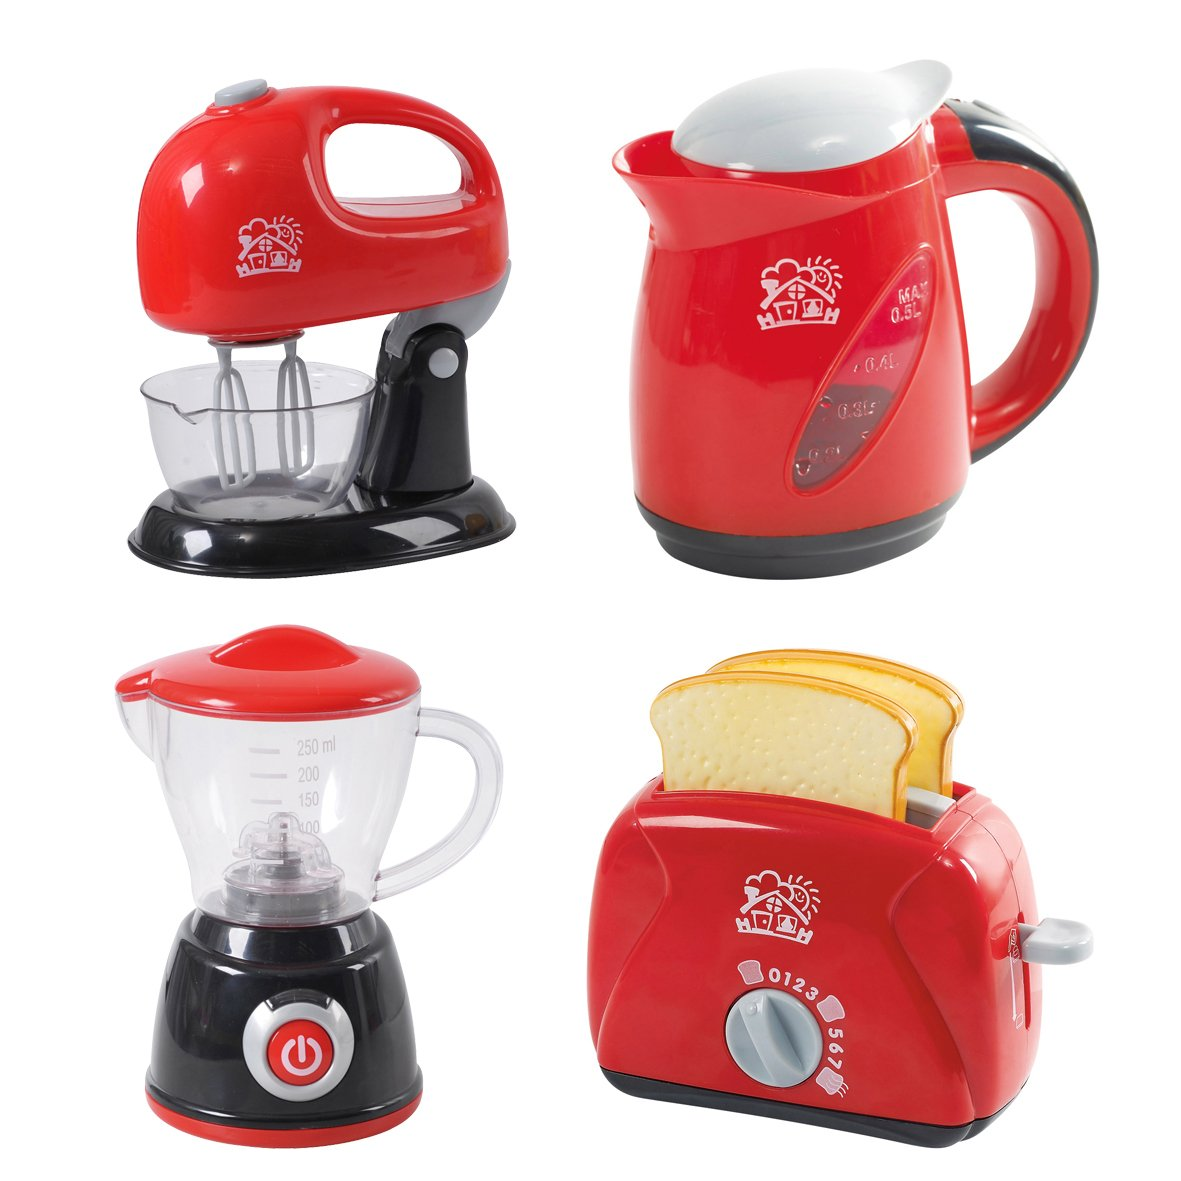 PlayGo Kitchen Chef Collection (My Toaster, Juice Maker, Kettle & Mixer) for Your Little Chef   Pretend Play Home Kitchen Appliances 4Piece Play Set for Kids Children Toddlers